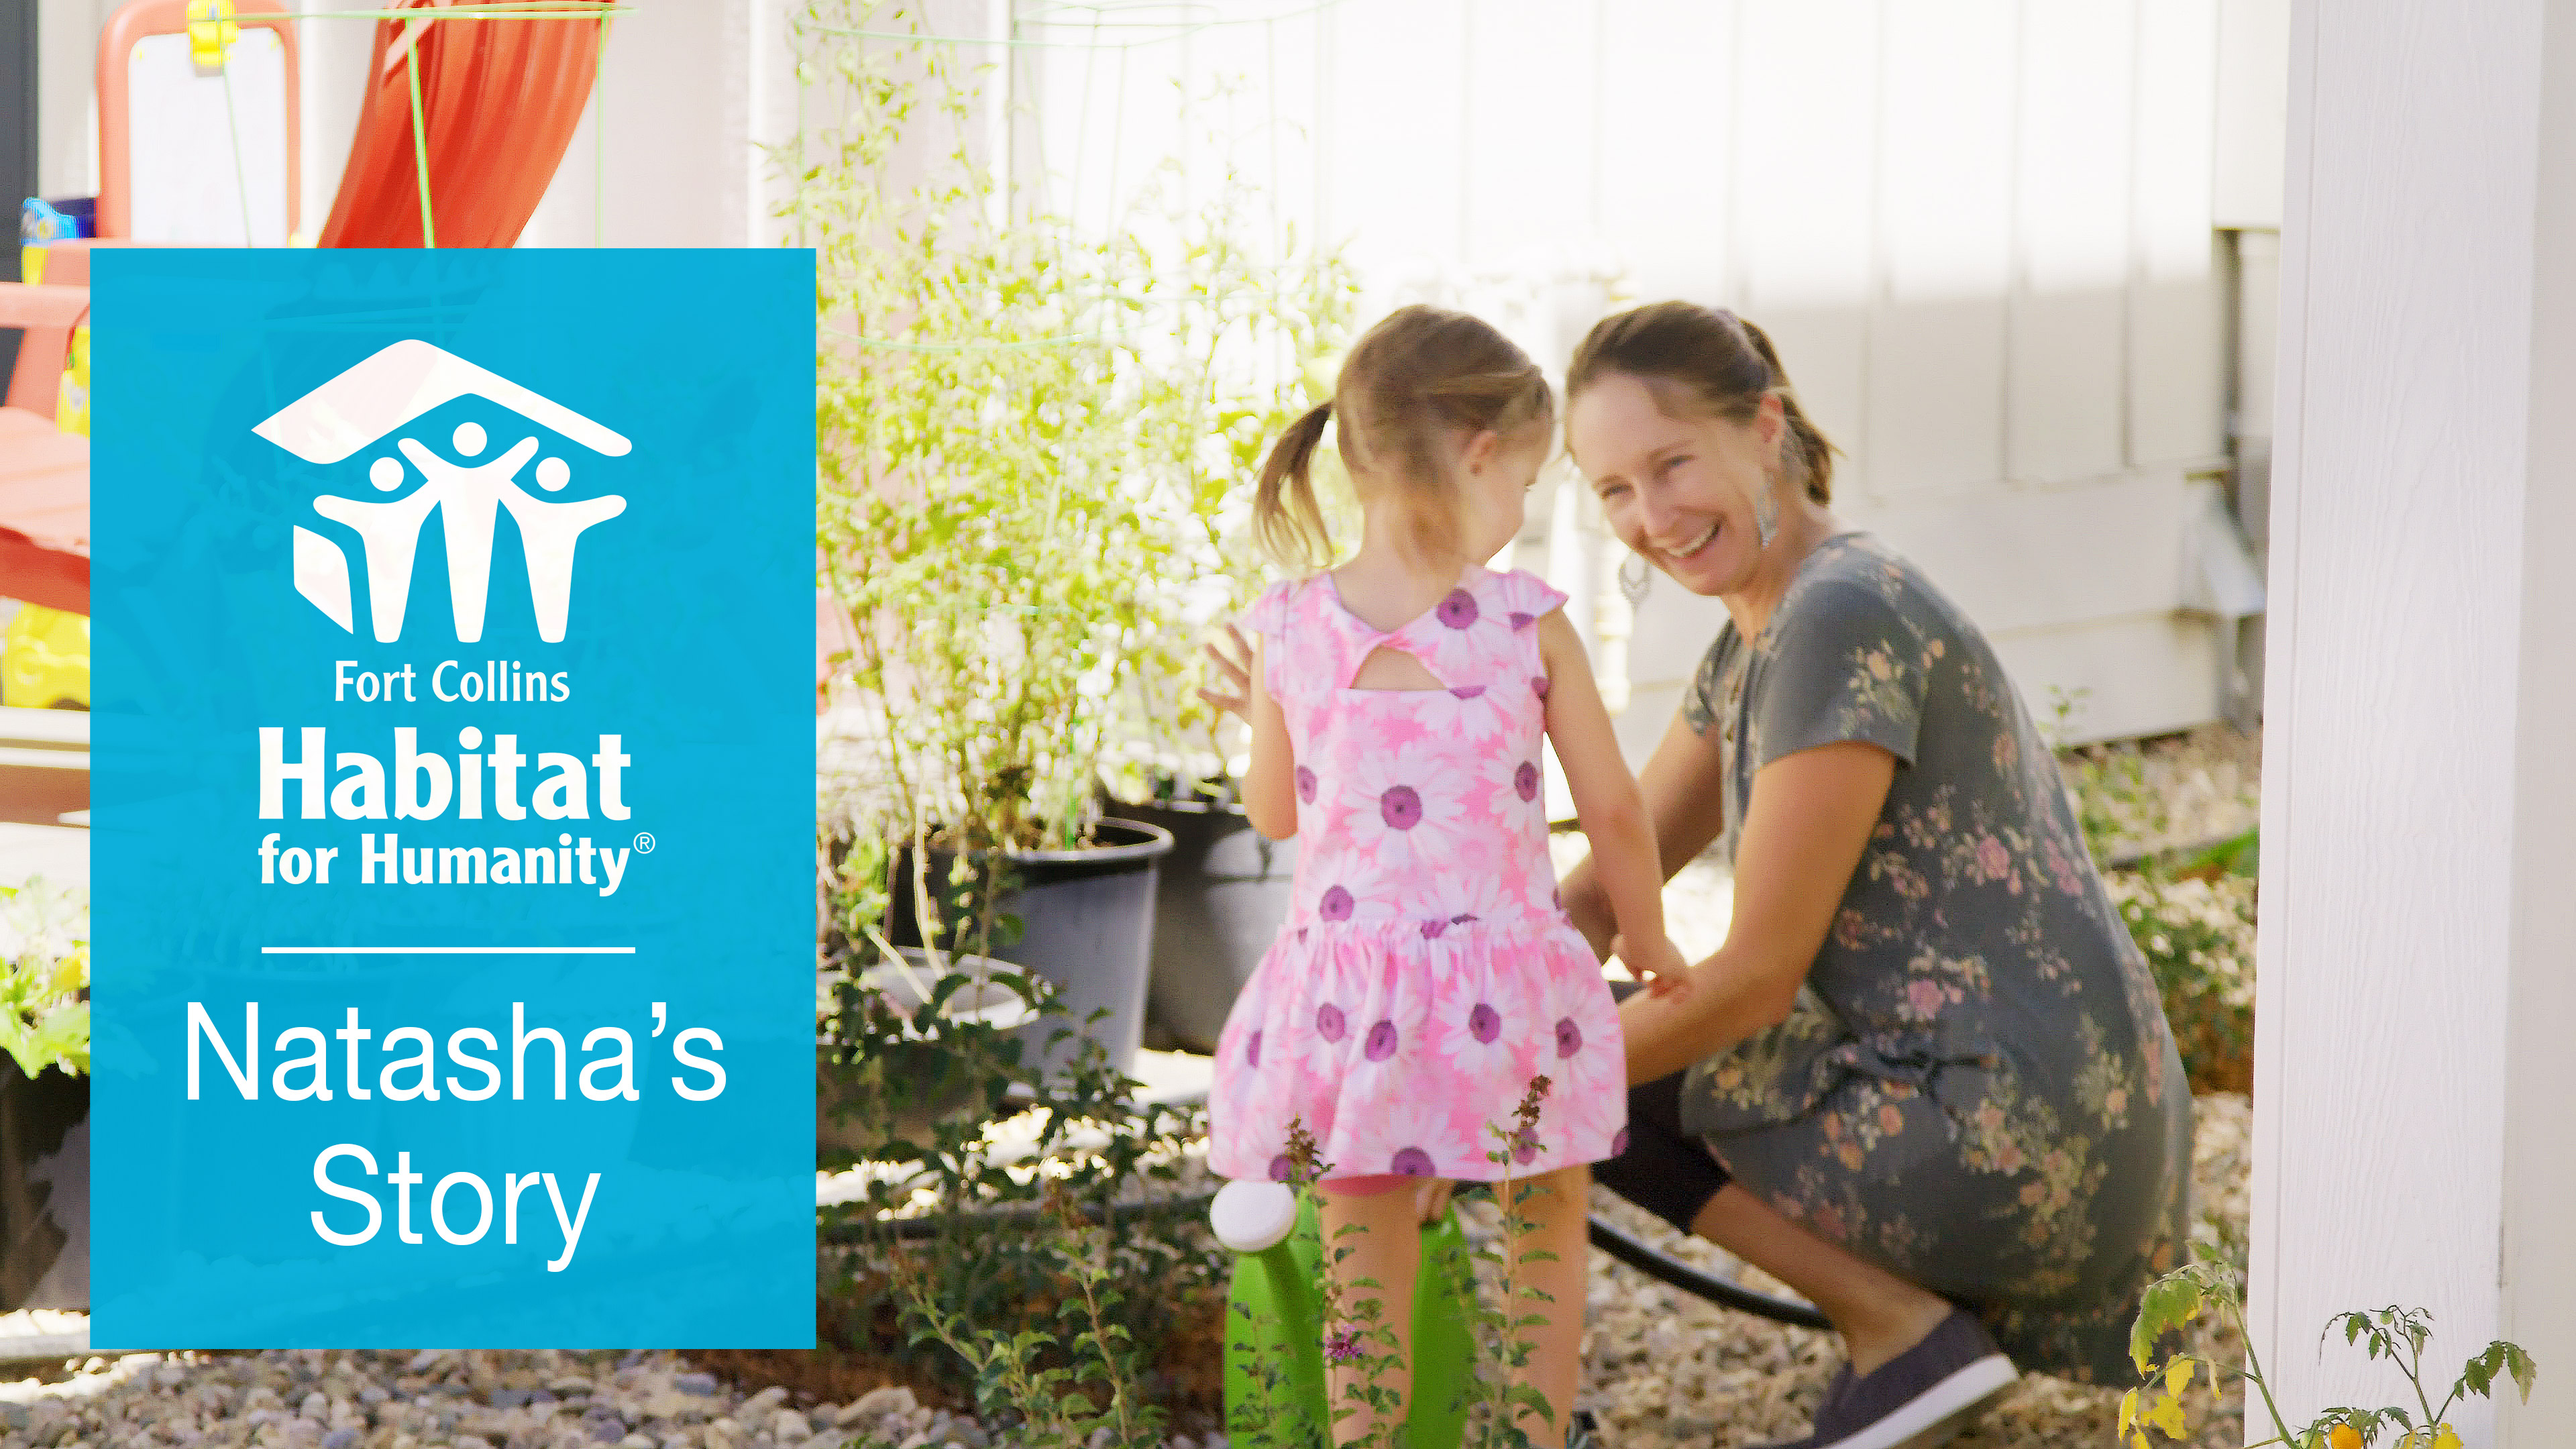 A Mom And Her Daughter Water Plants At Habitat For Humanity House